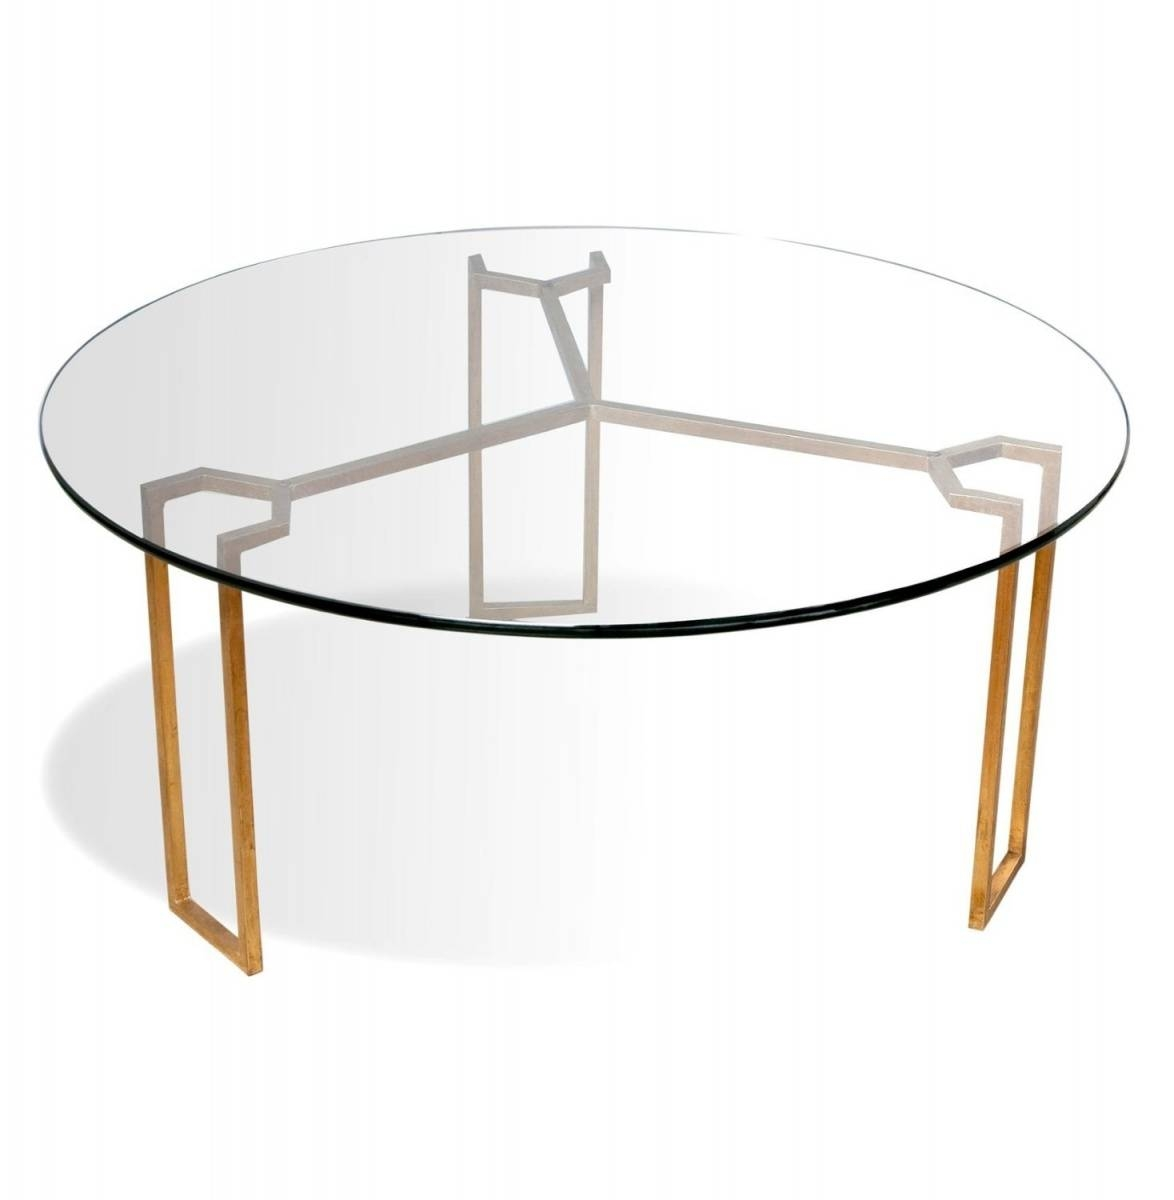 Coffee Table : Glass Round Coffee Tables Small Round Glass Coffee with regard to Small Circle Coffee Tables (Image 4 of 30)